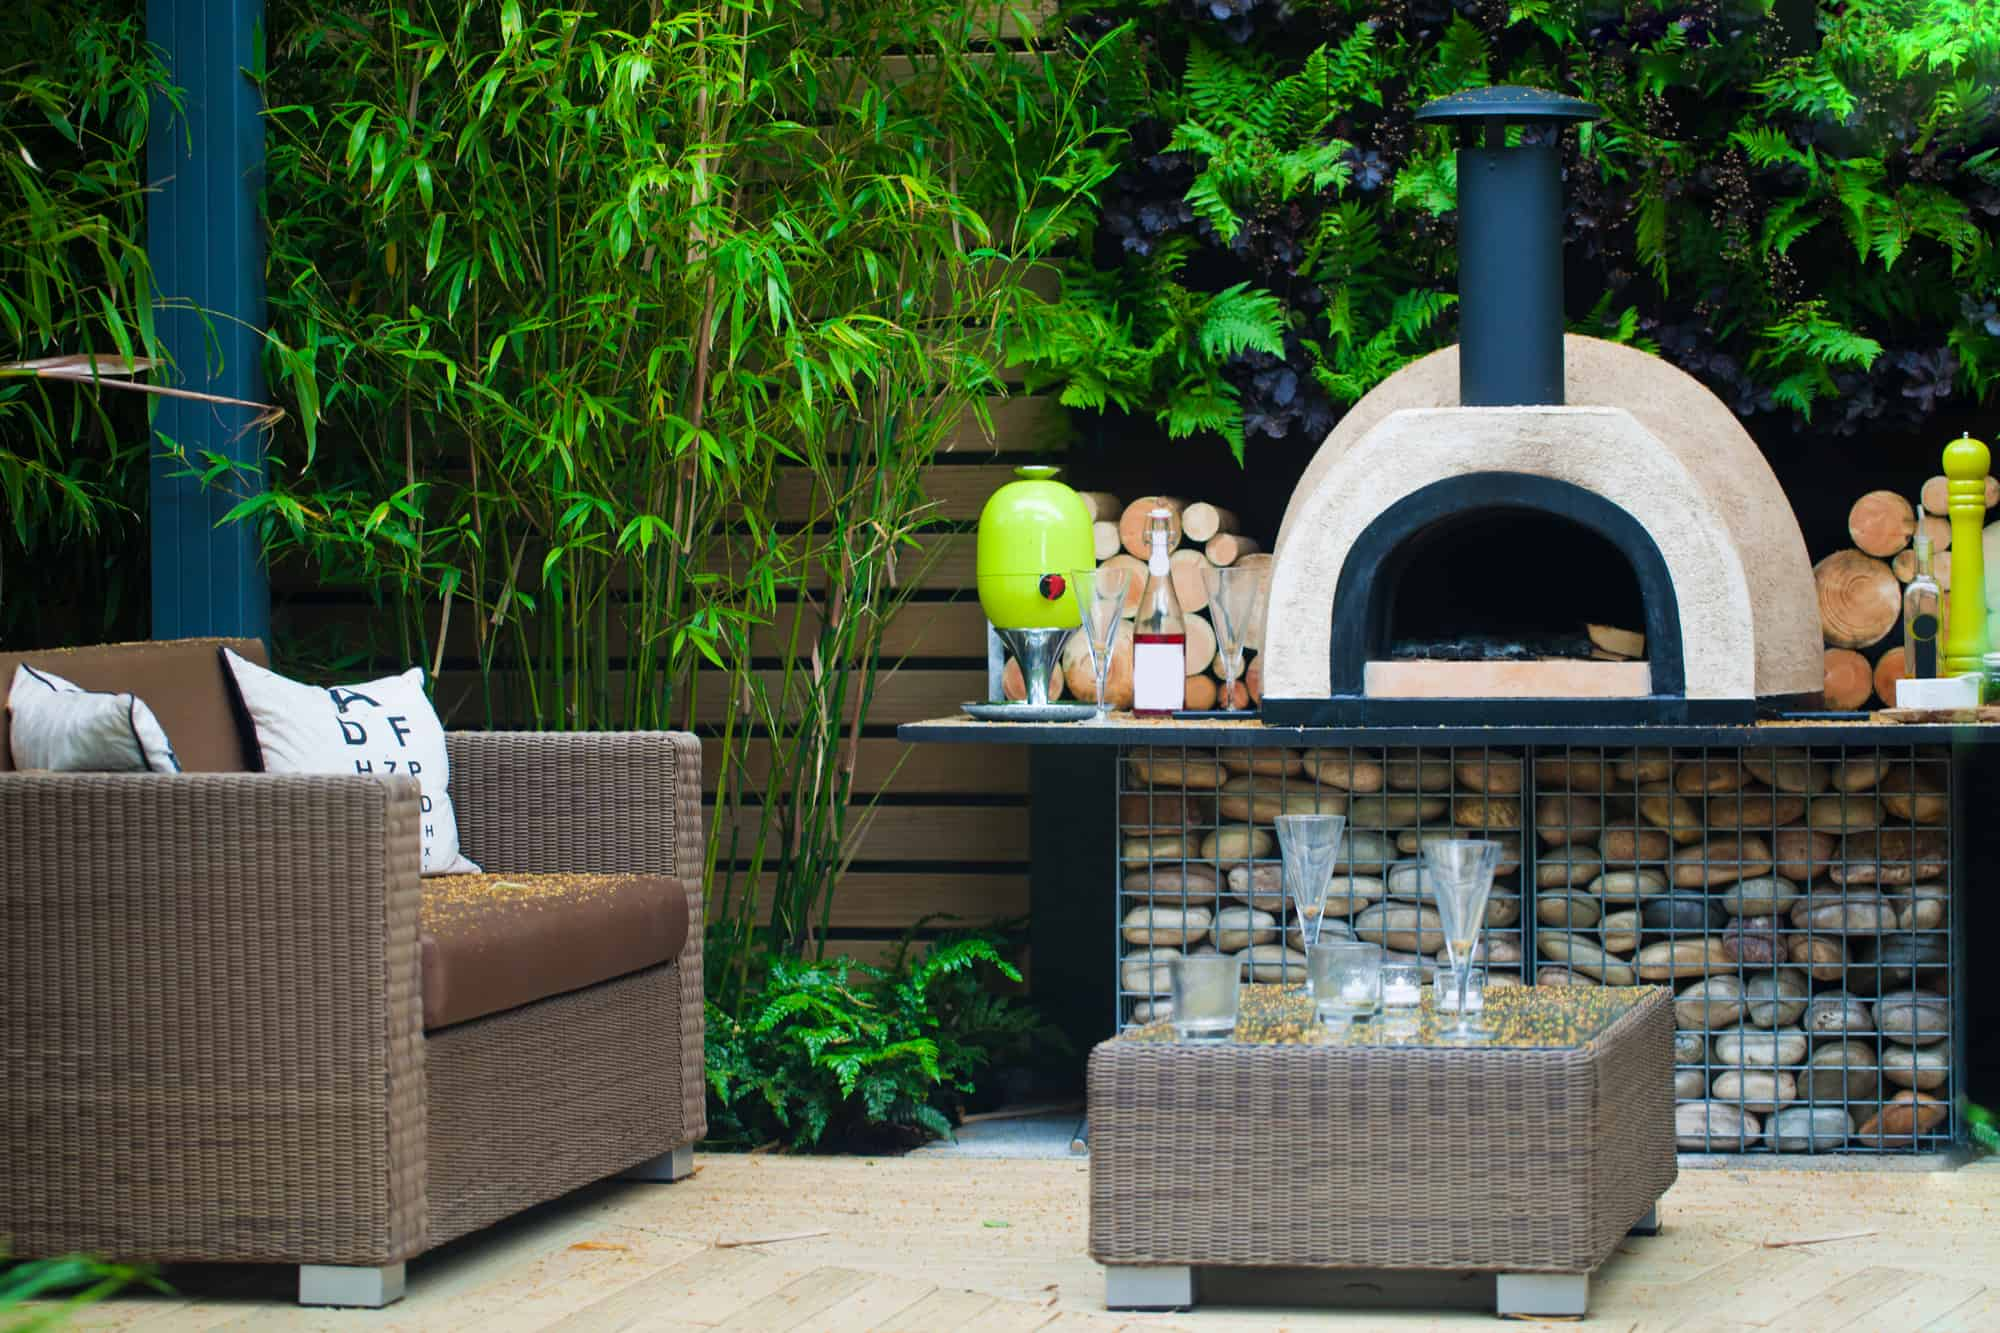 Pizza oven in backyard lounge space